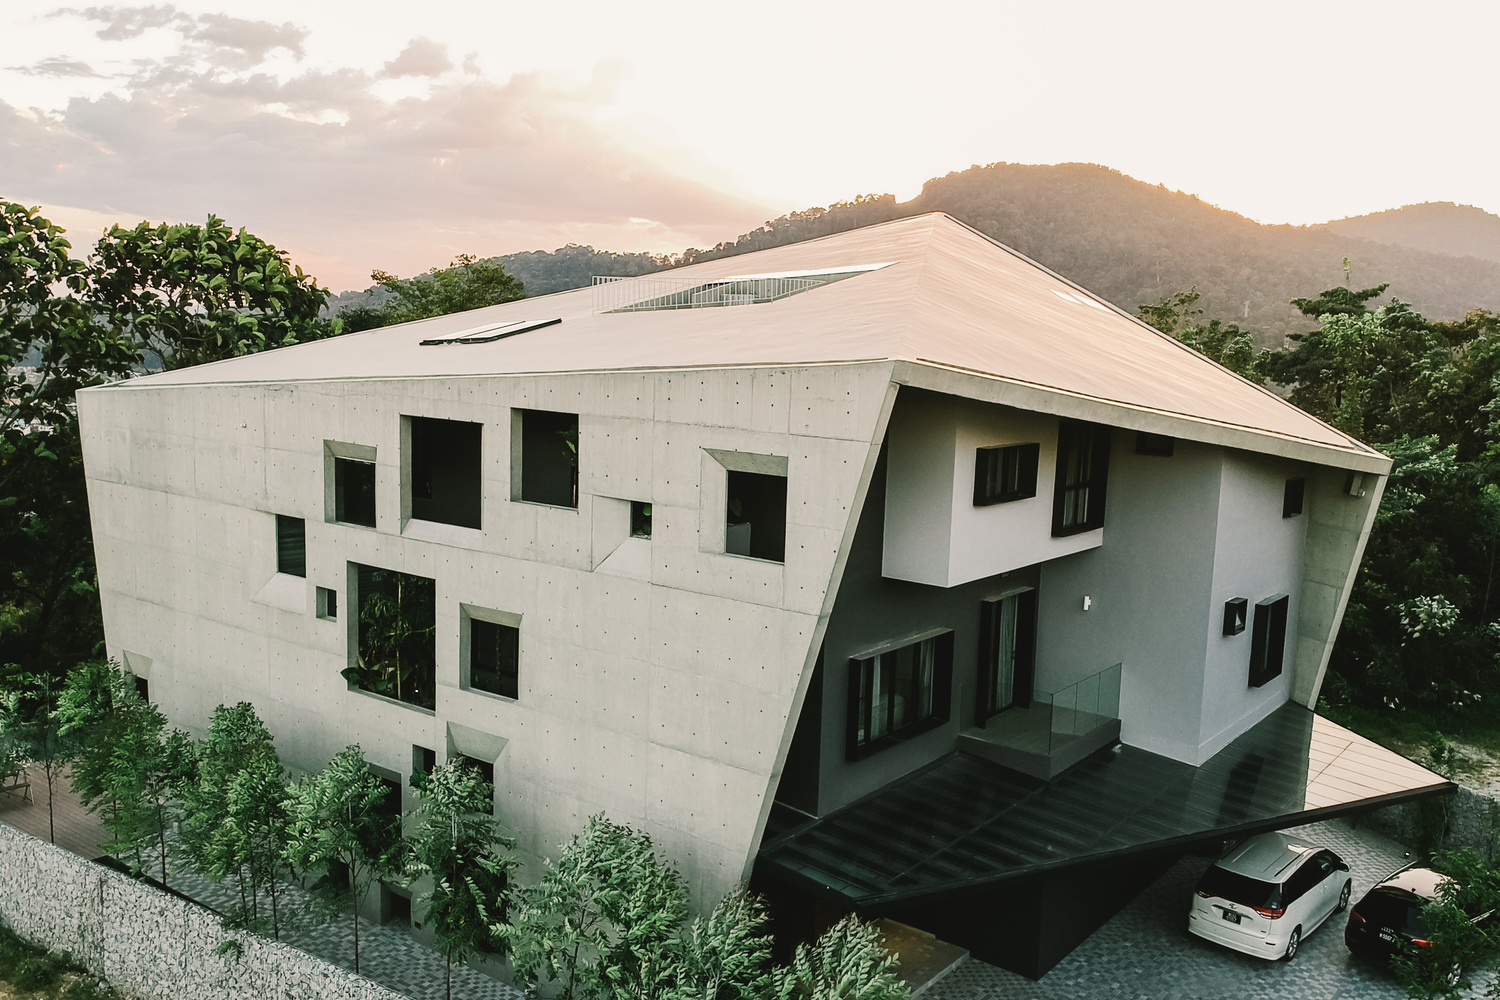 Modern home covered in a concrete shell of windows